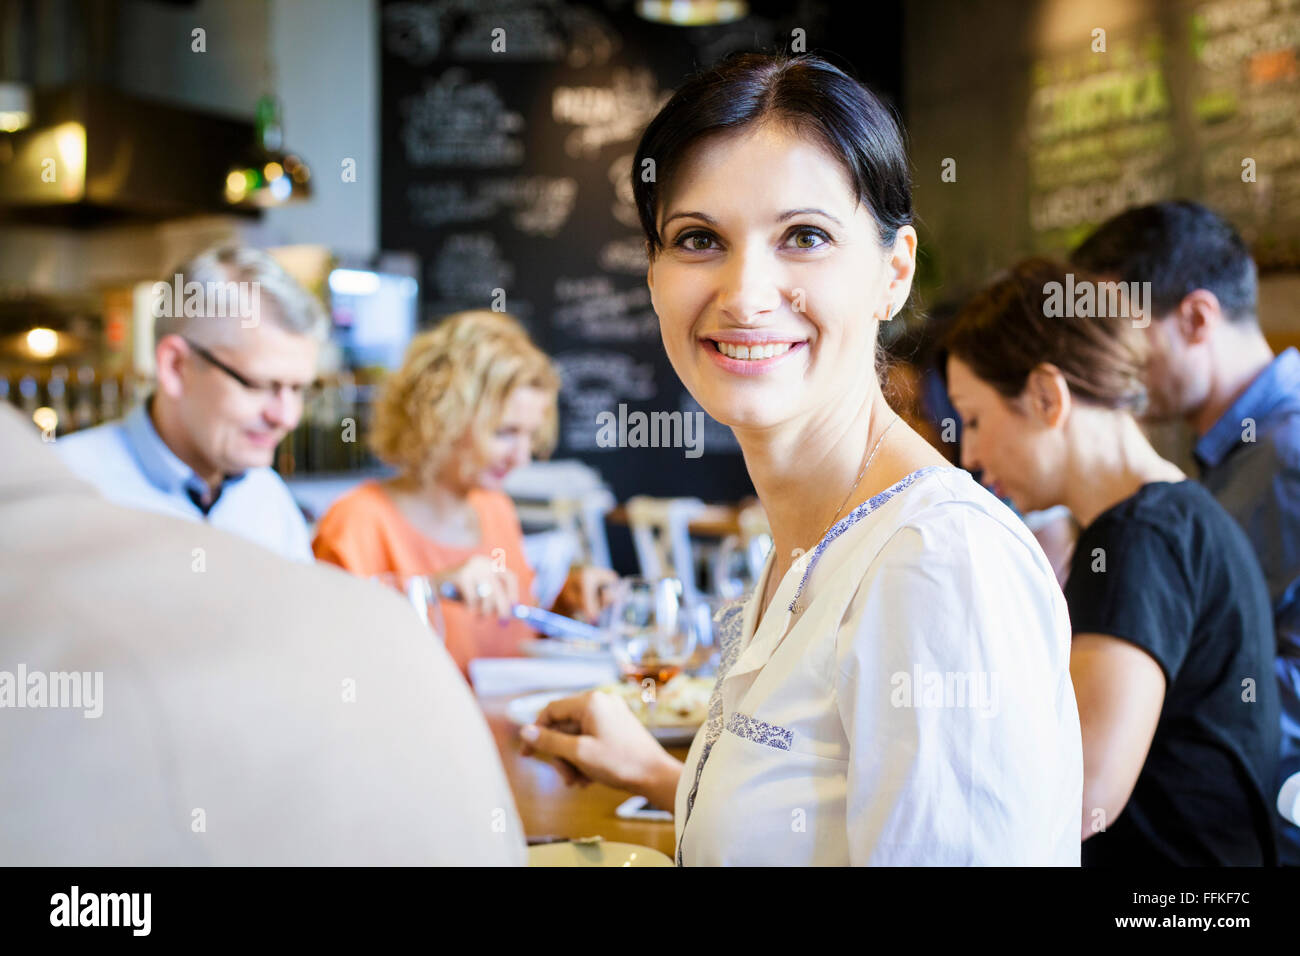 Group of friends celebrating in restaurant Photo Stock